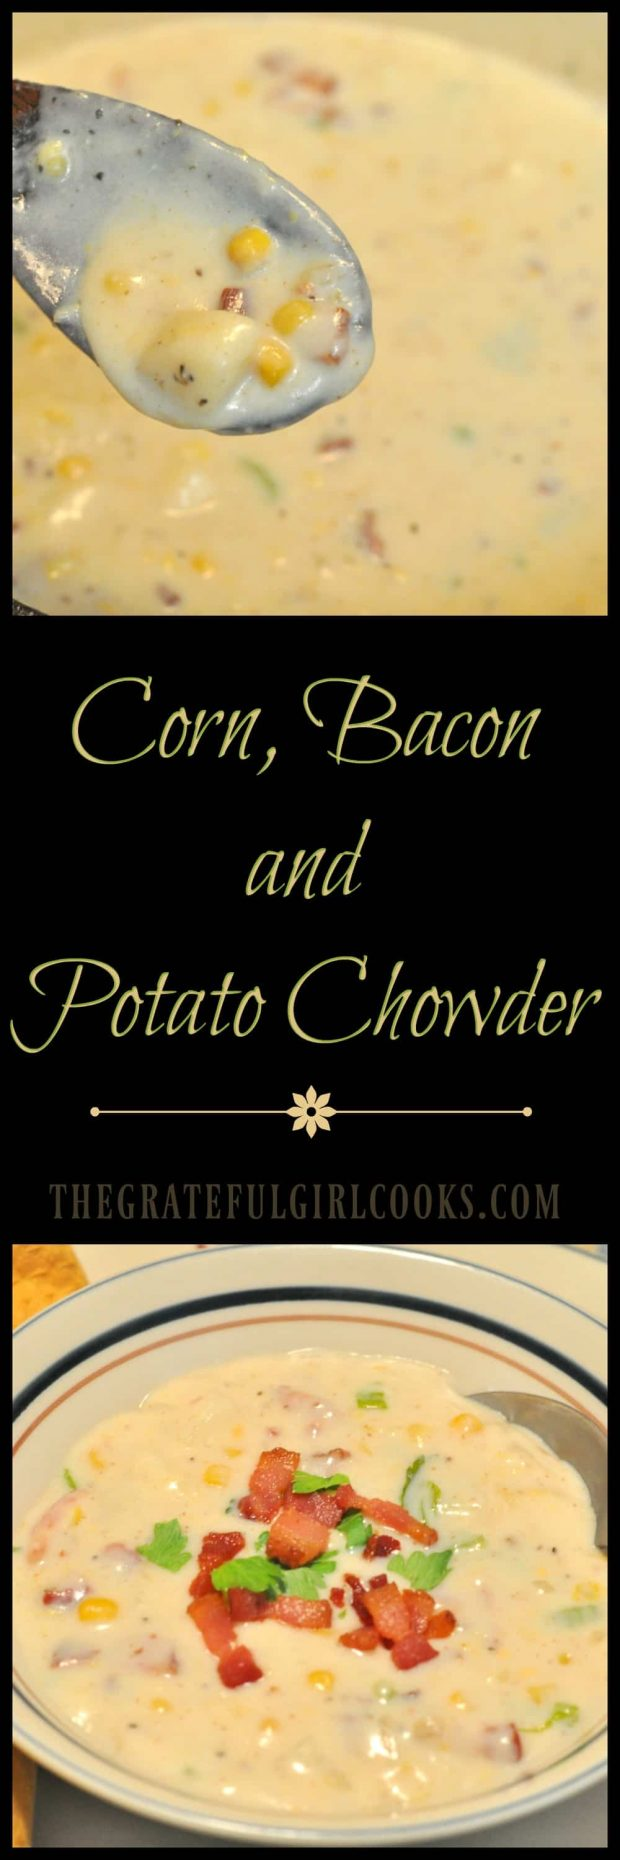 Corn, Bacon & Potato Chowder / The Grateful Girl Cooks! This thick, creamy chowder with potatoes, corn, and bacon is very filling and delicious, and easy to prepare. Perfect hot soup for a cold day!